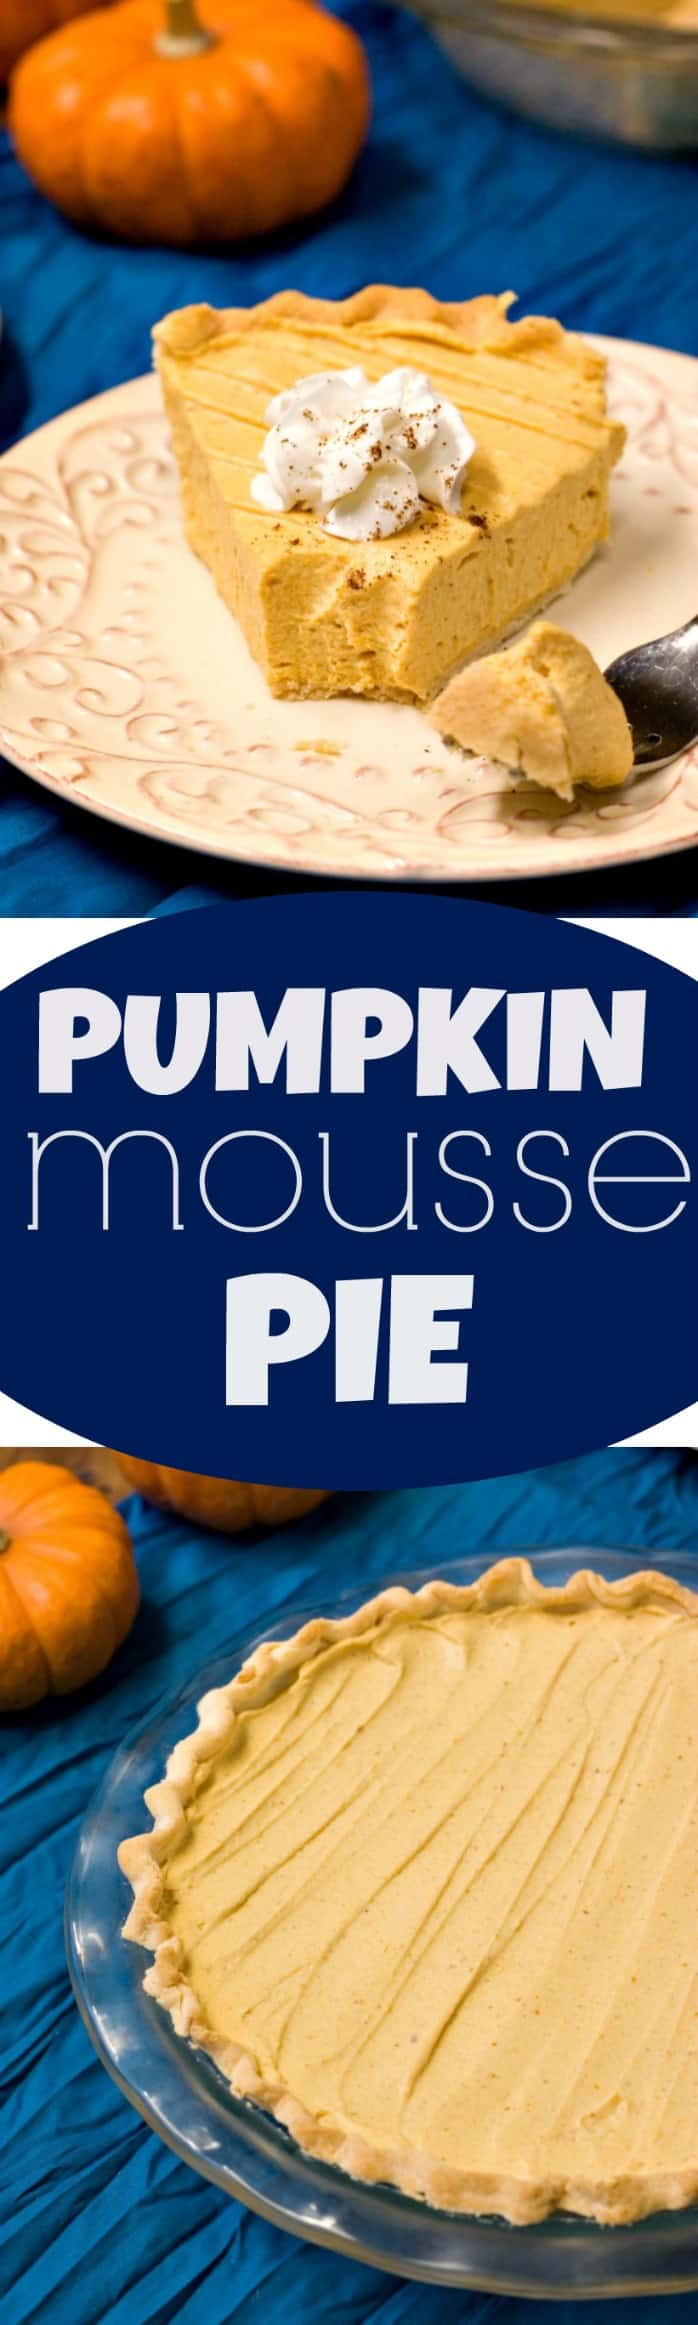 pumpkin mousse pie long Pumpkin Mousse Pie